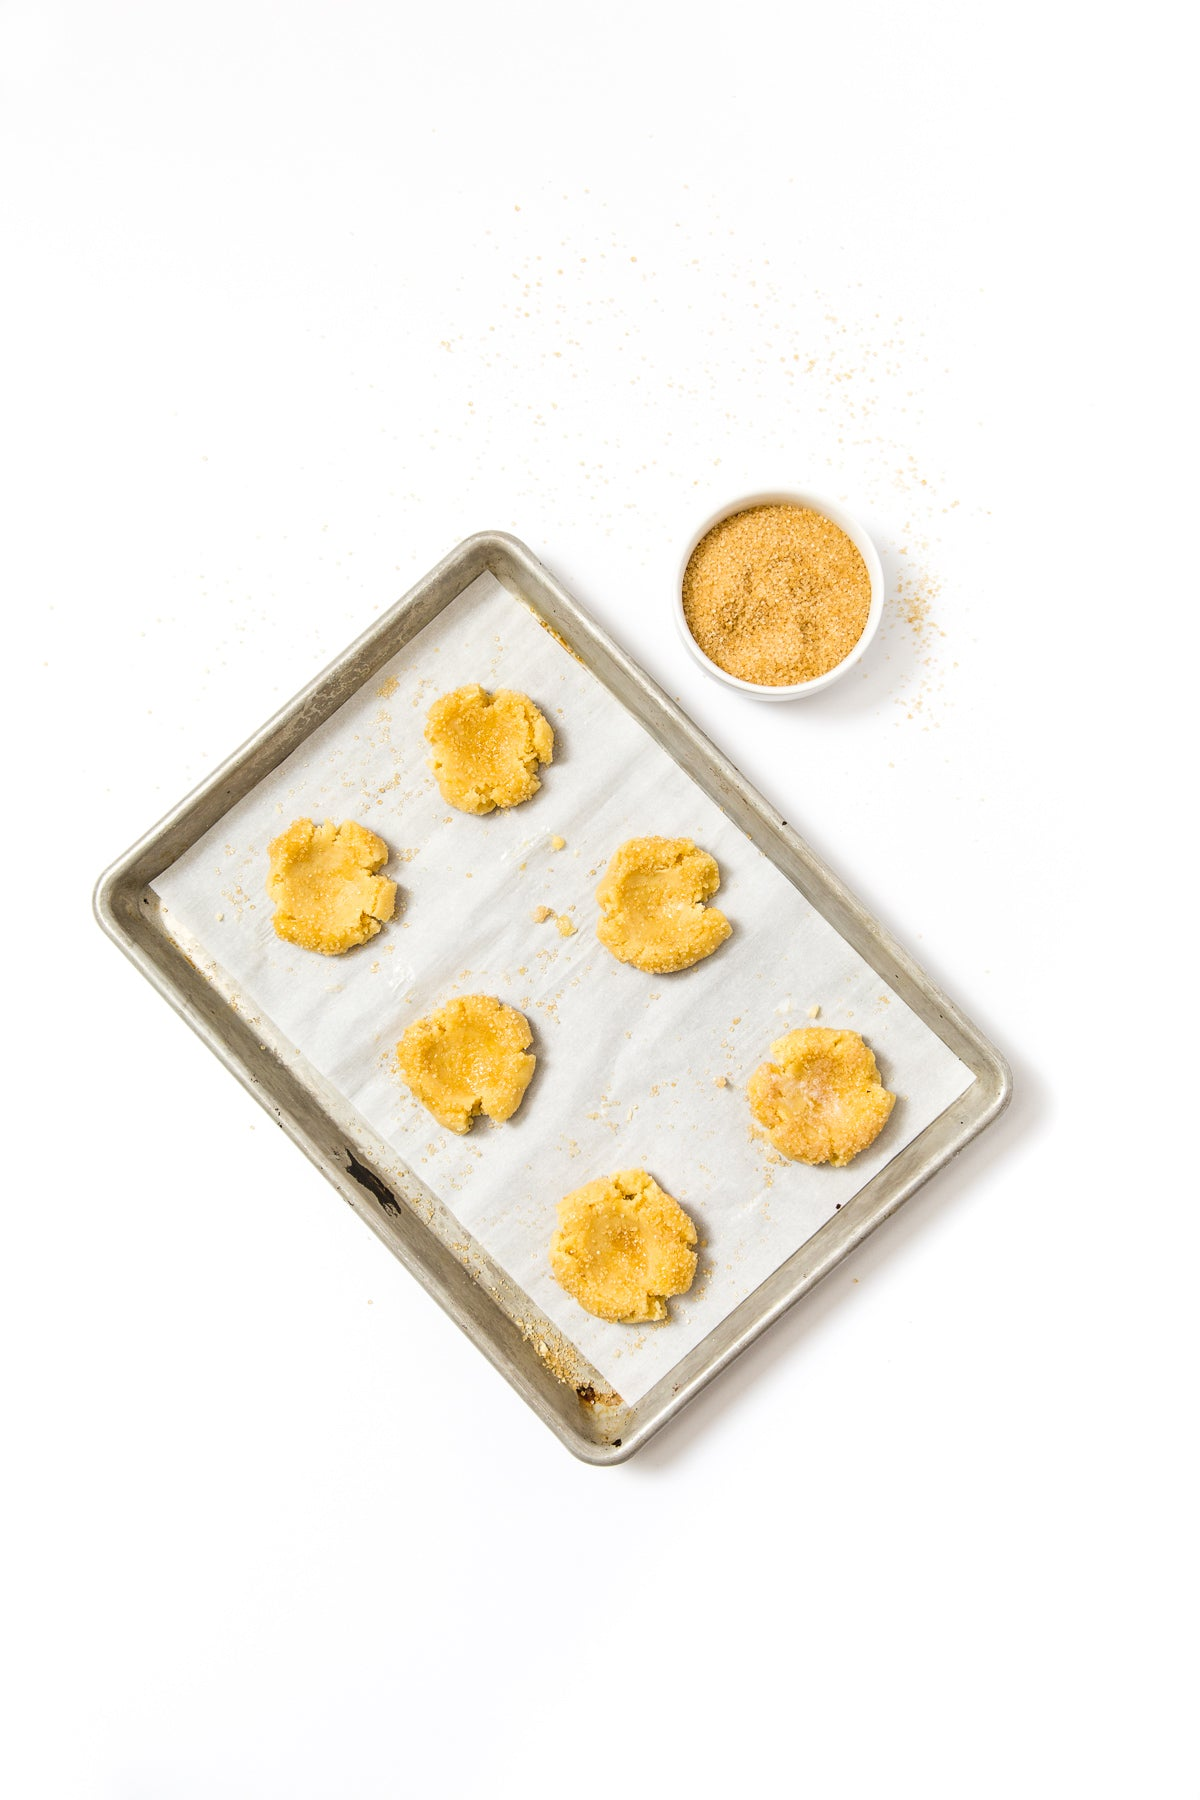 Image from above of a baking sheet with six dough balls for Miss Jones Baking Co Cake Batter Thumbprint Cookies